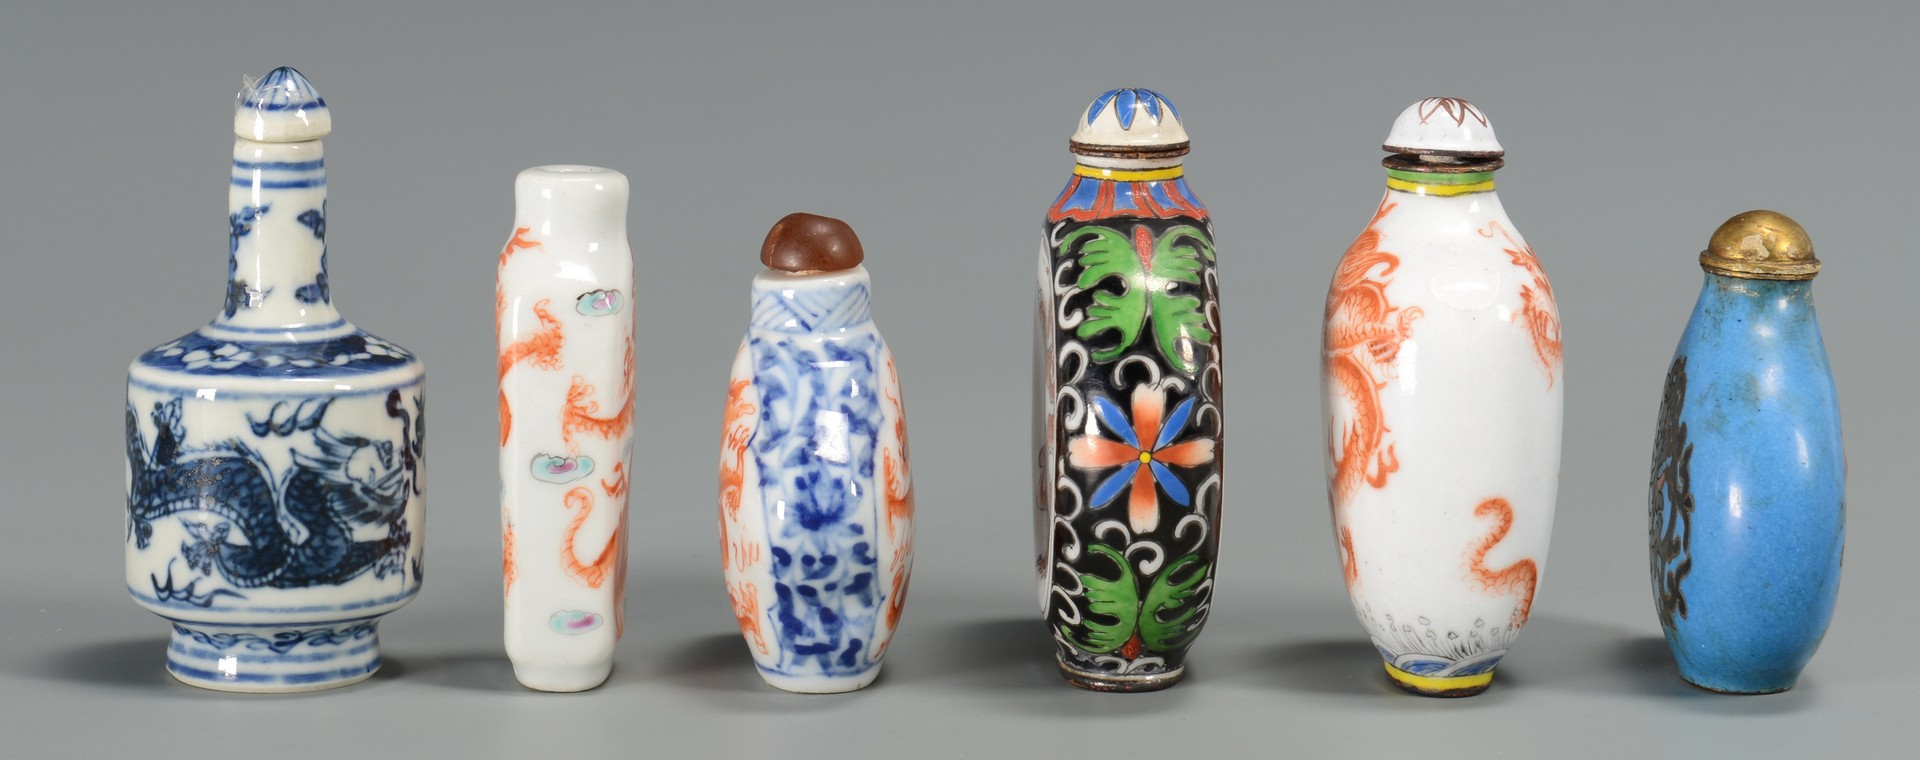 Lot 3594192: Group of 6 Asian Snuff Bottles